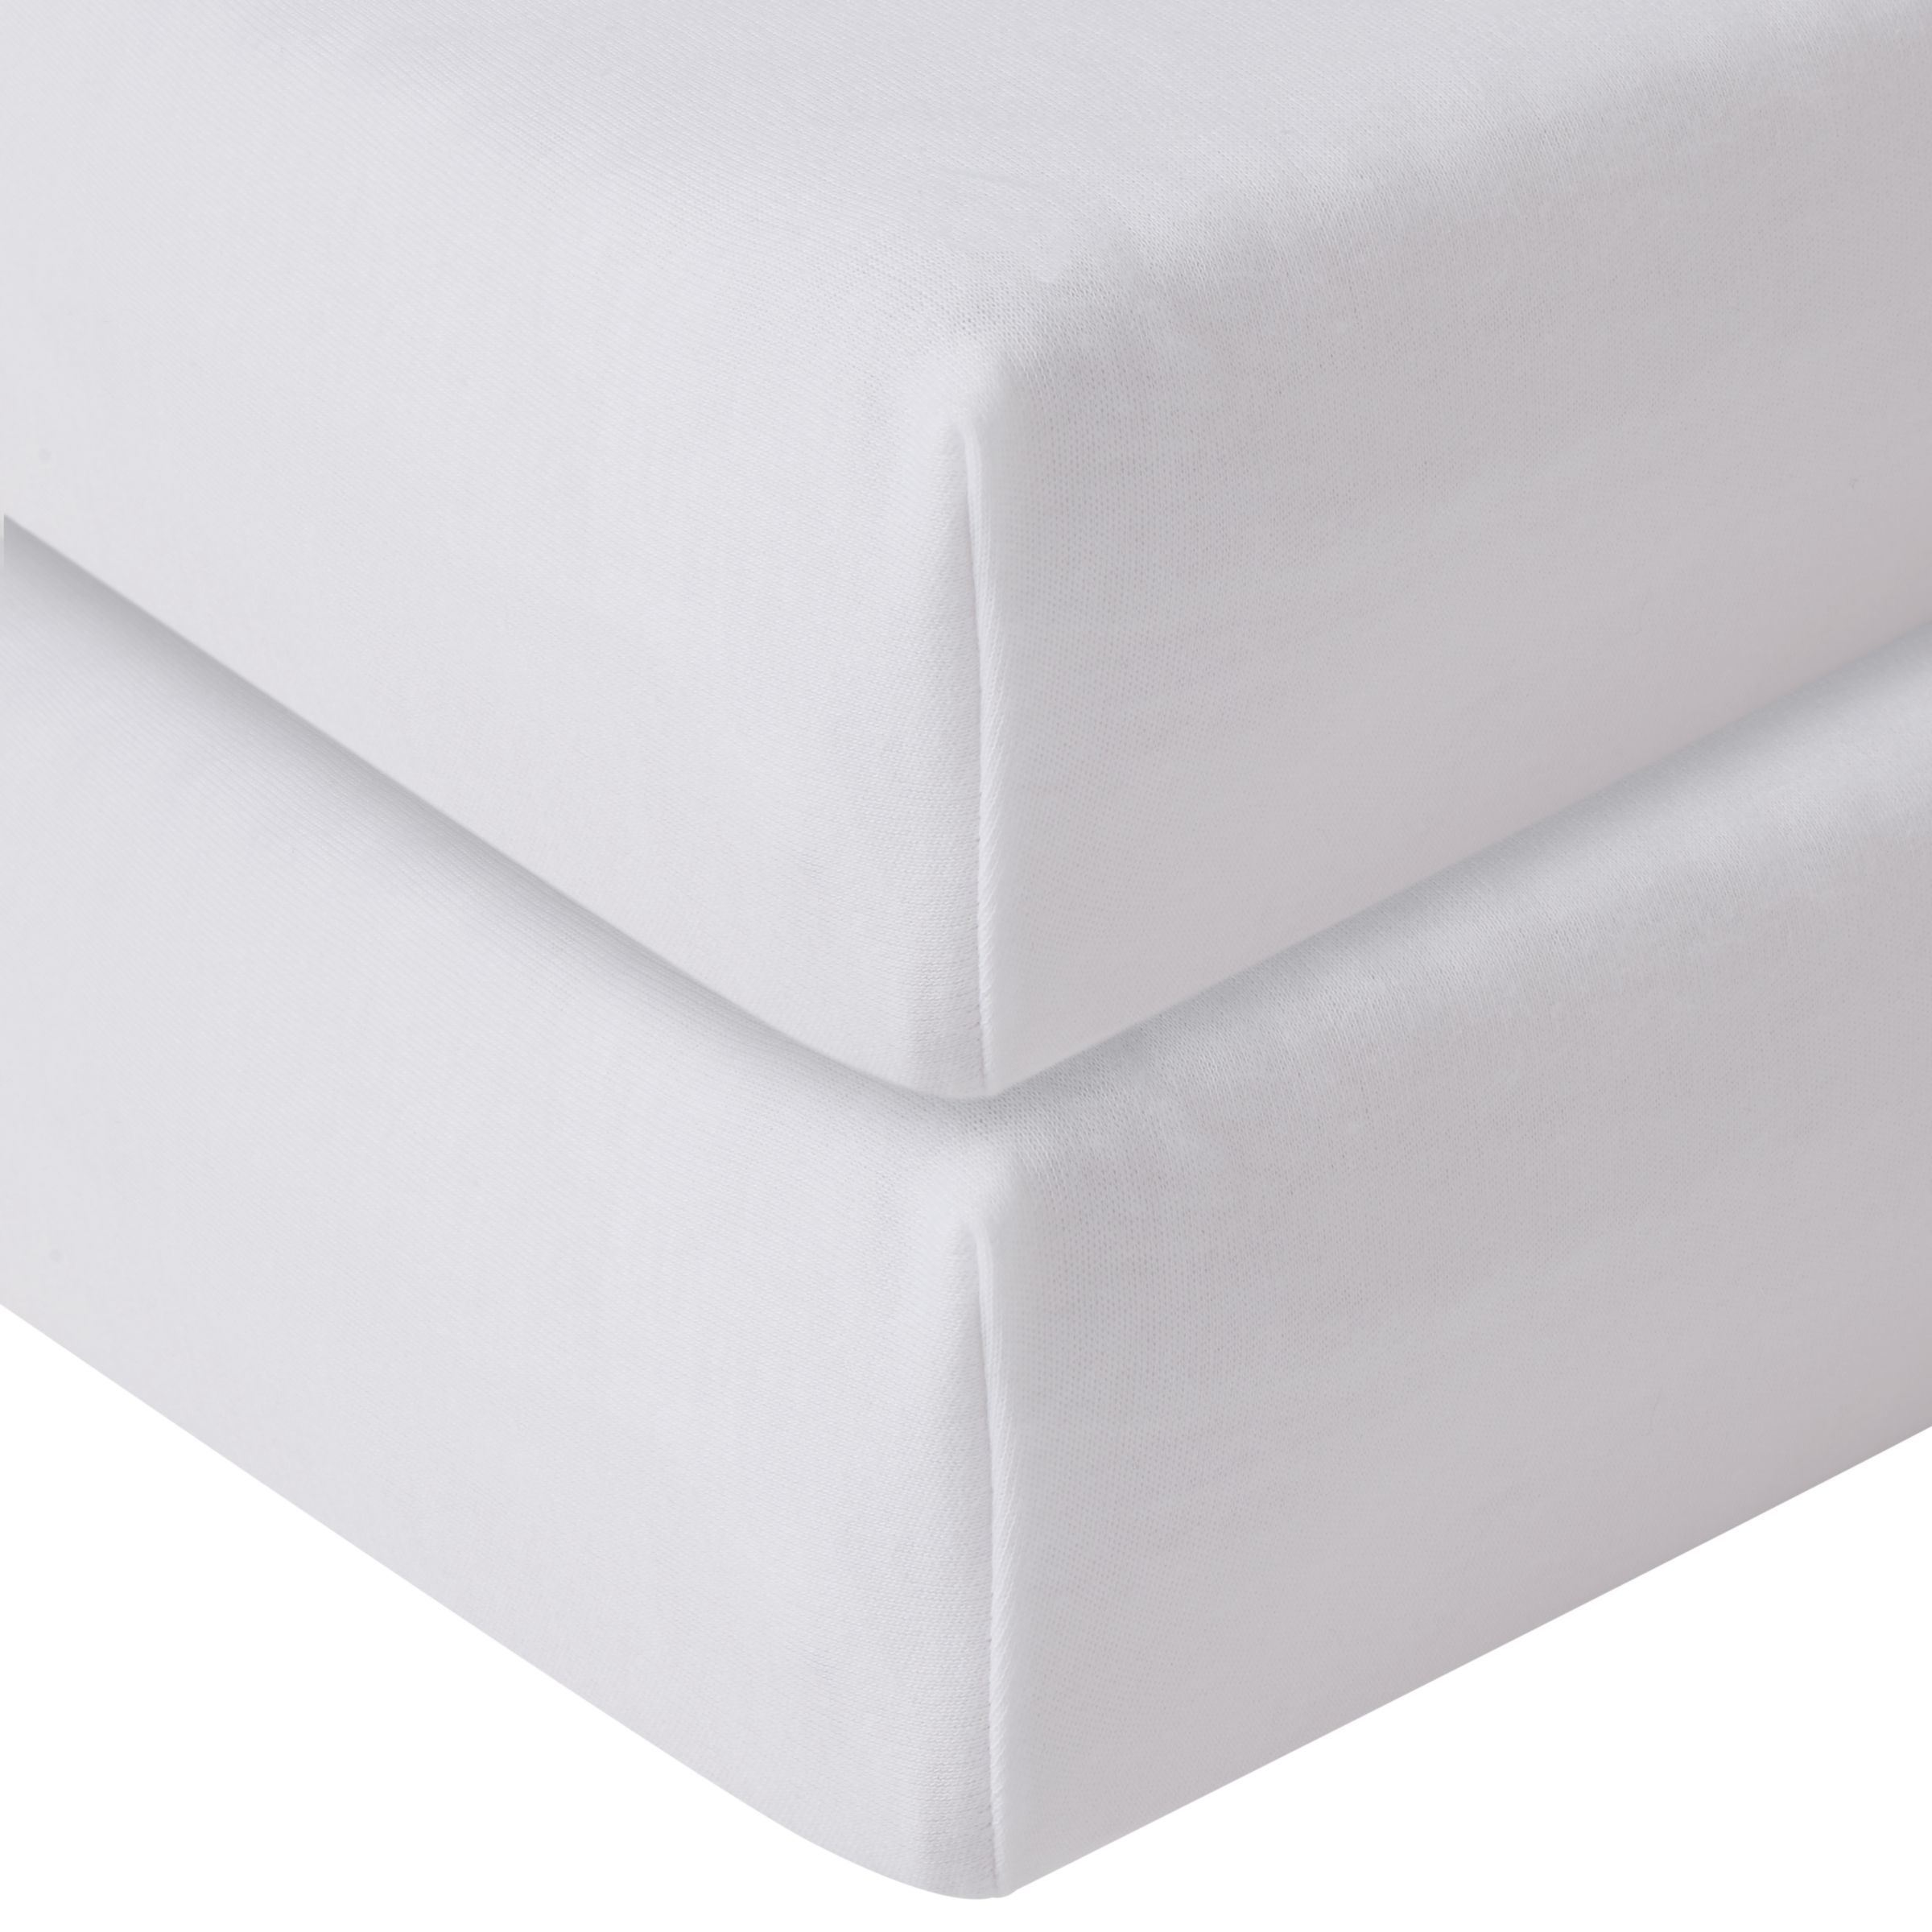 John Lewis & Partners GOTS Organic Cotton Fitted Cot Sheet, Pack of 2, 60 x 120